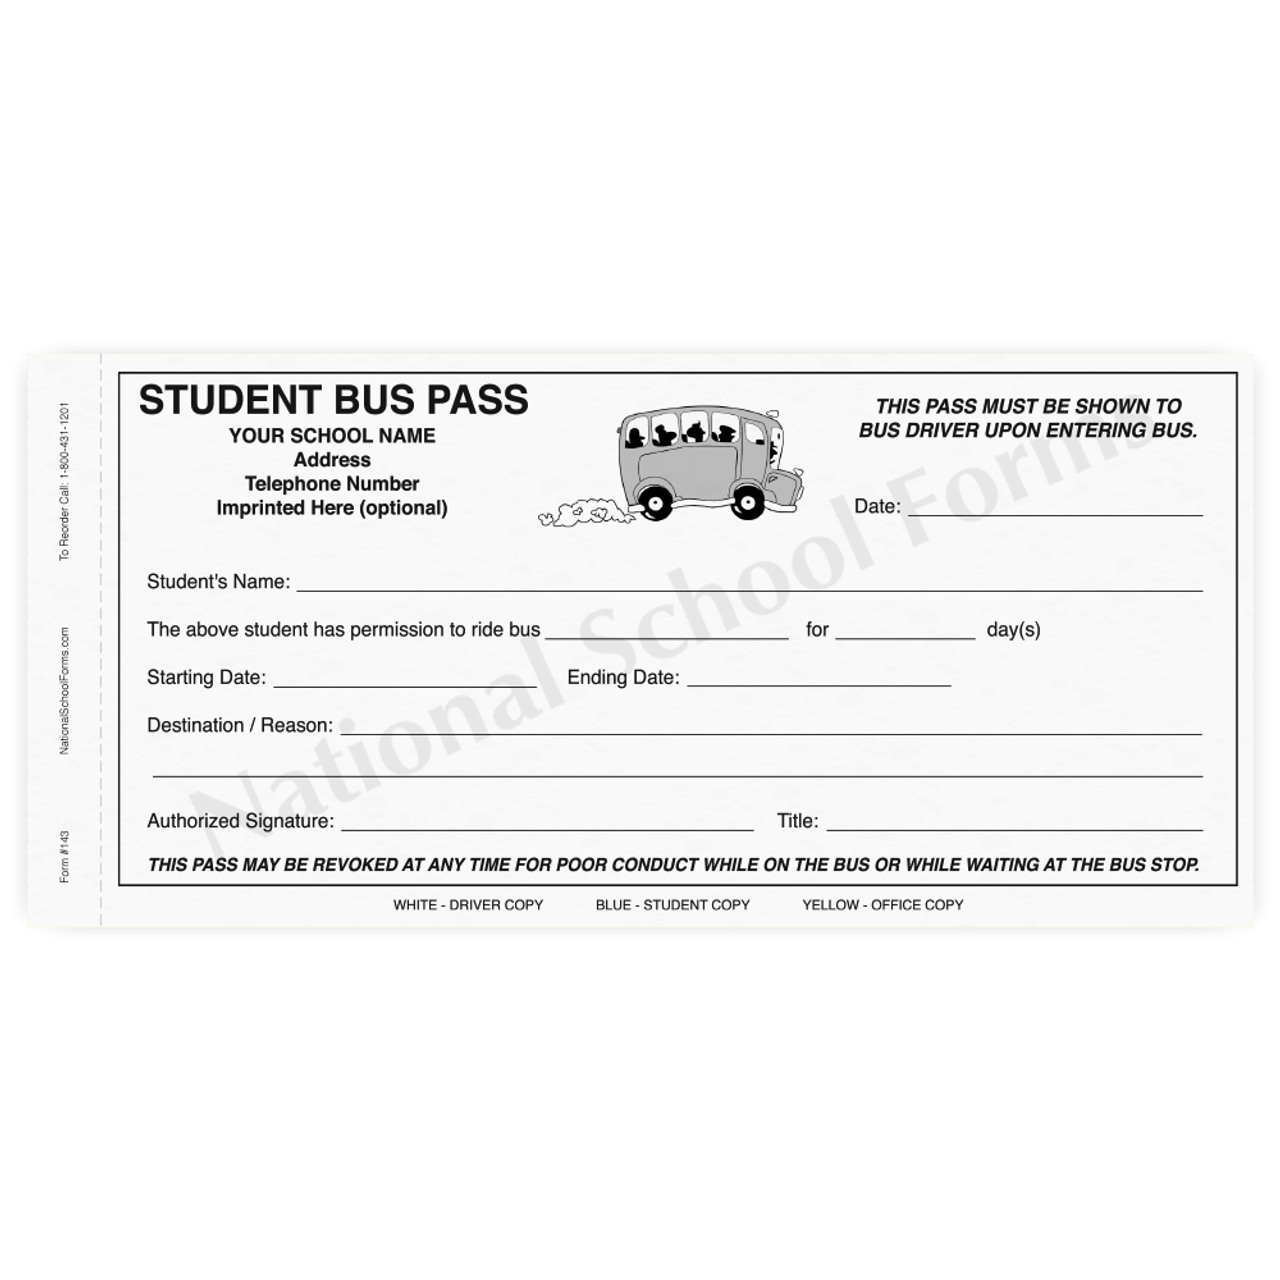 Student Bus Pass (143) - 3 part carbonless form with optional Imprint